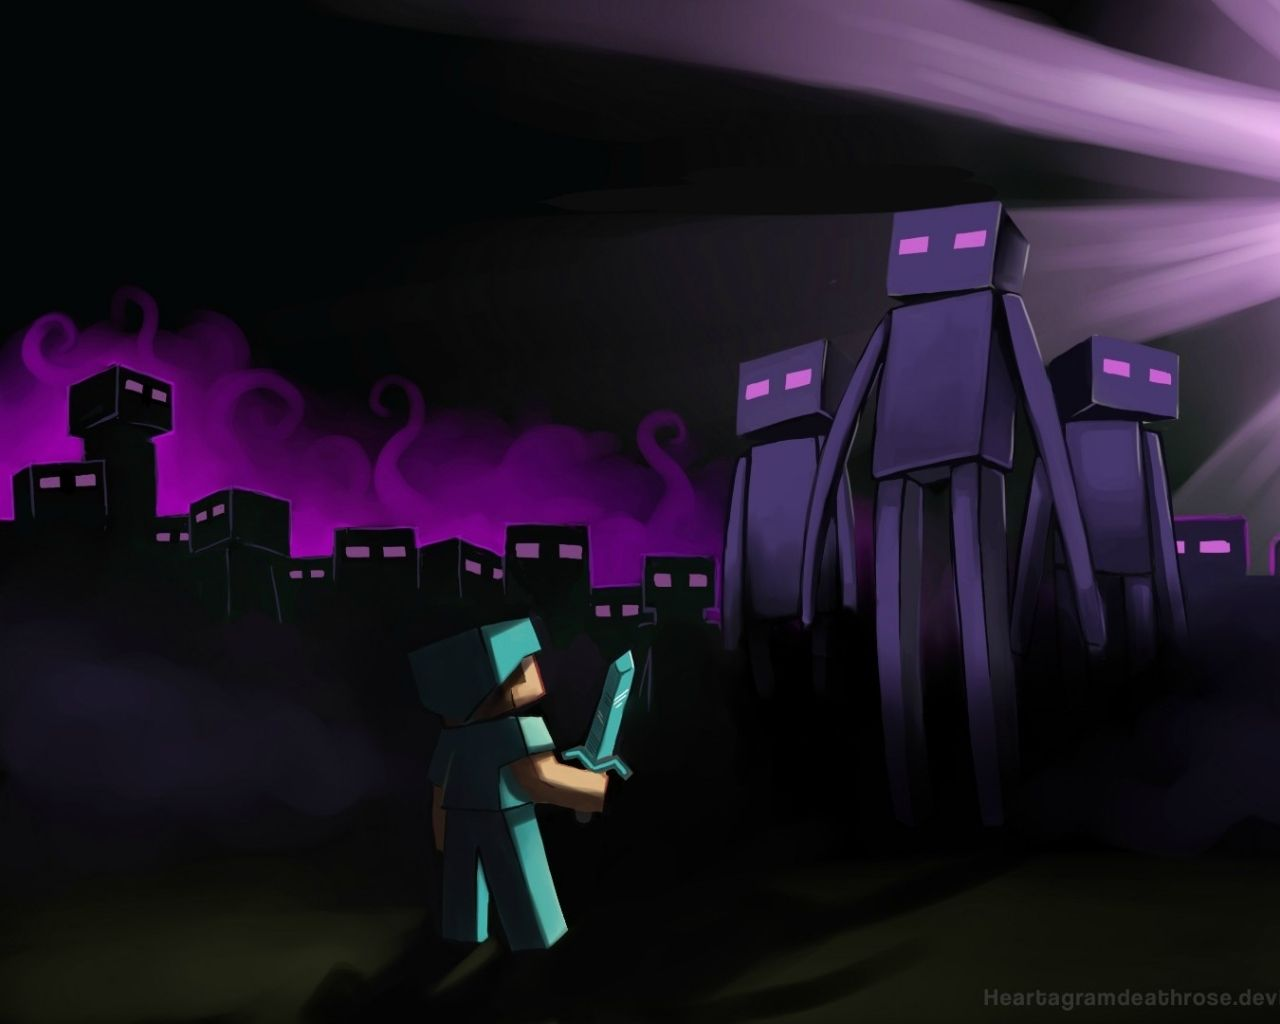 Enderman Rule The Planet O_o Enderman Wallpaper 35260274 Fanpop